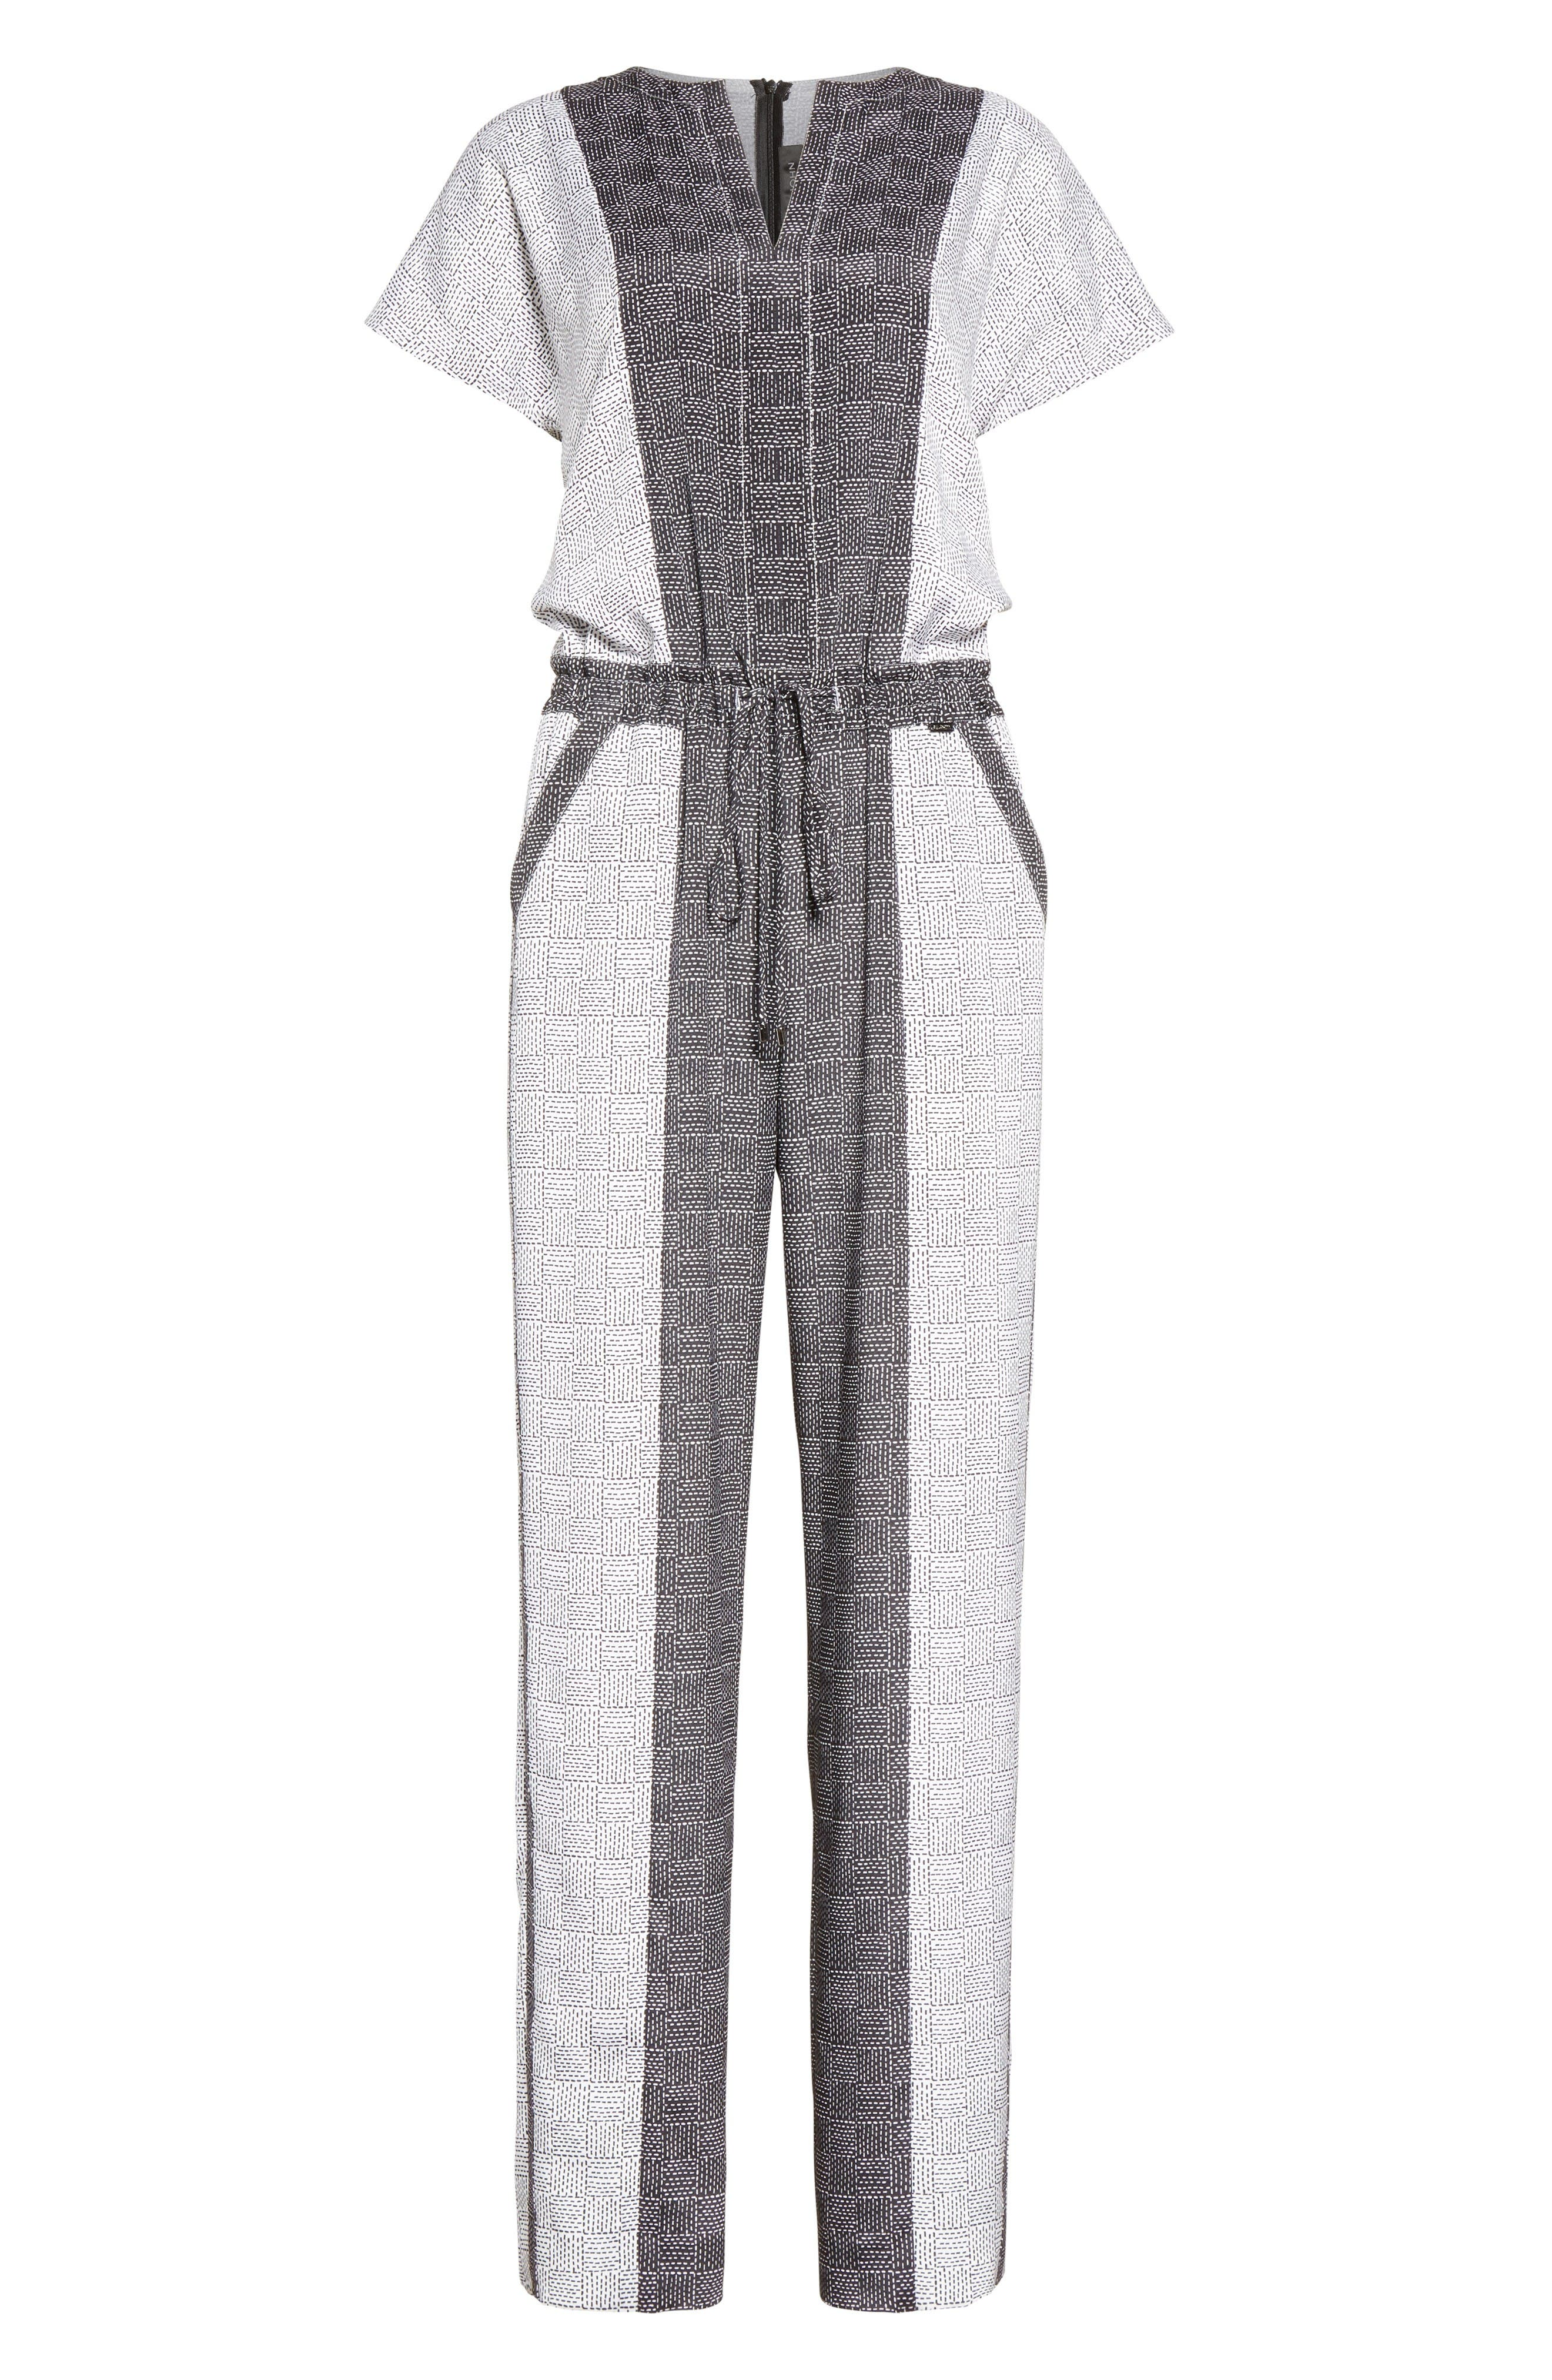 Stitch Print Stretch Silk Jumpsuit,                             Alternate thumbnail 6, color,                             Bianco/ Caviar